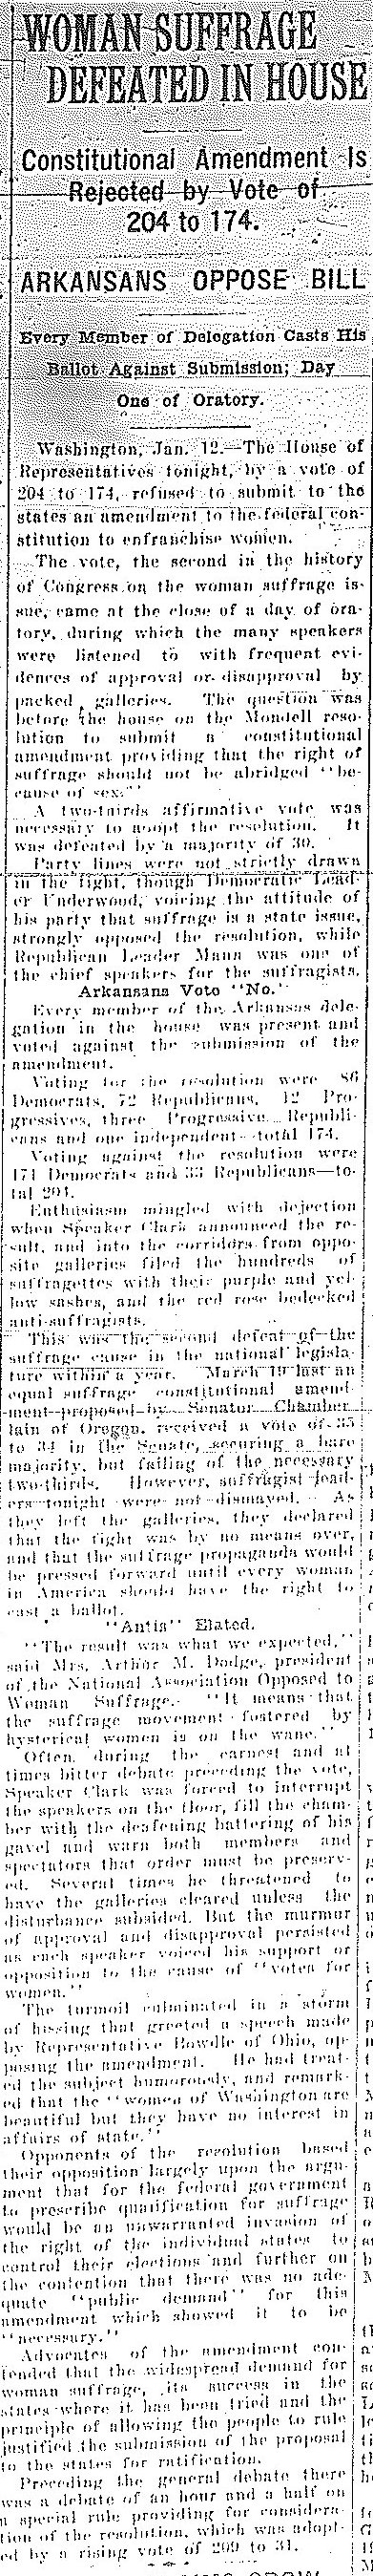 anti suffrage arkansas women s suffrage centennial project w suffrage defeated in the house arkansas gazette 1 1915 courtesy of the arkansas state archives